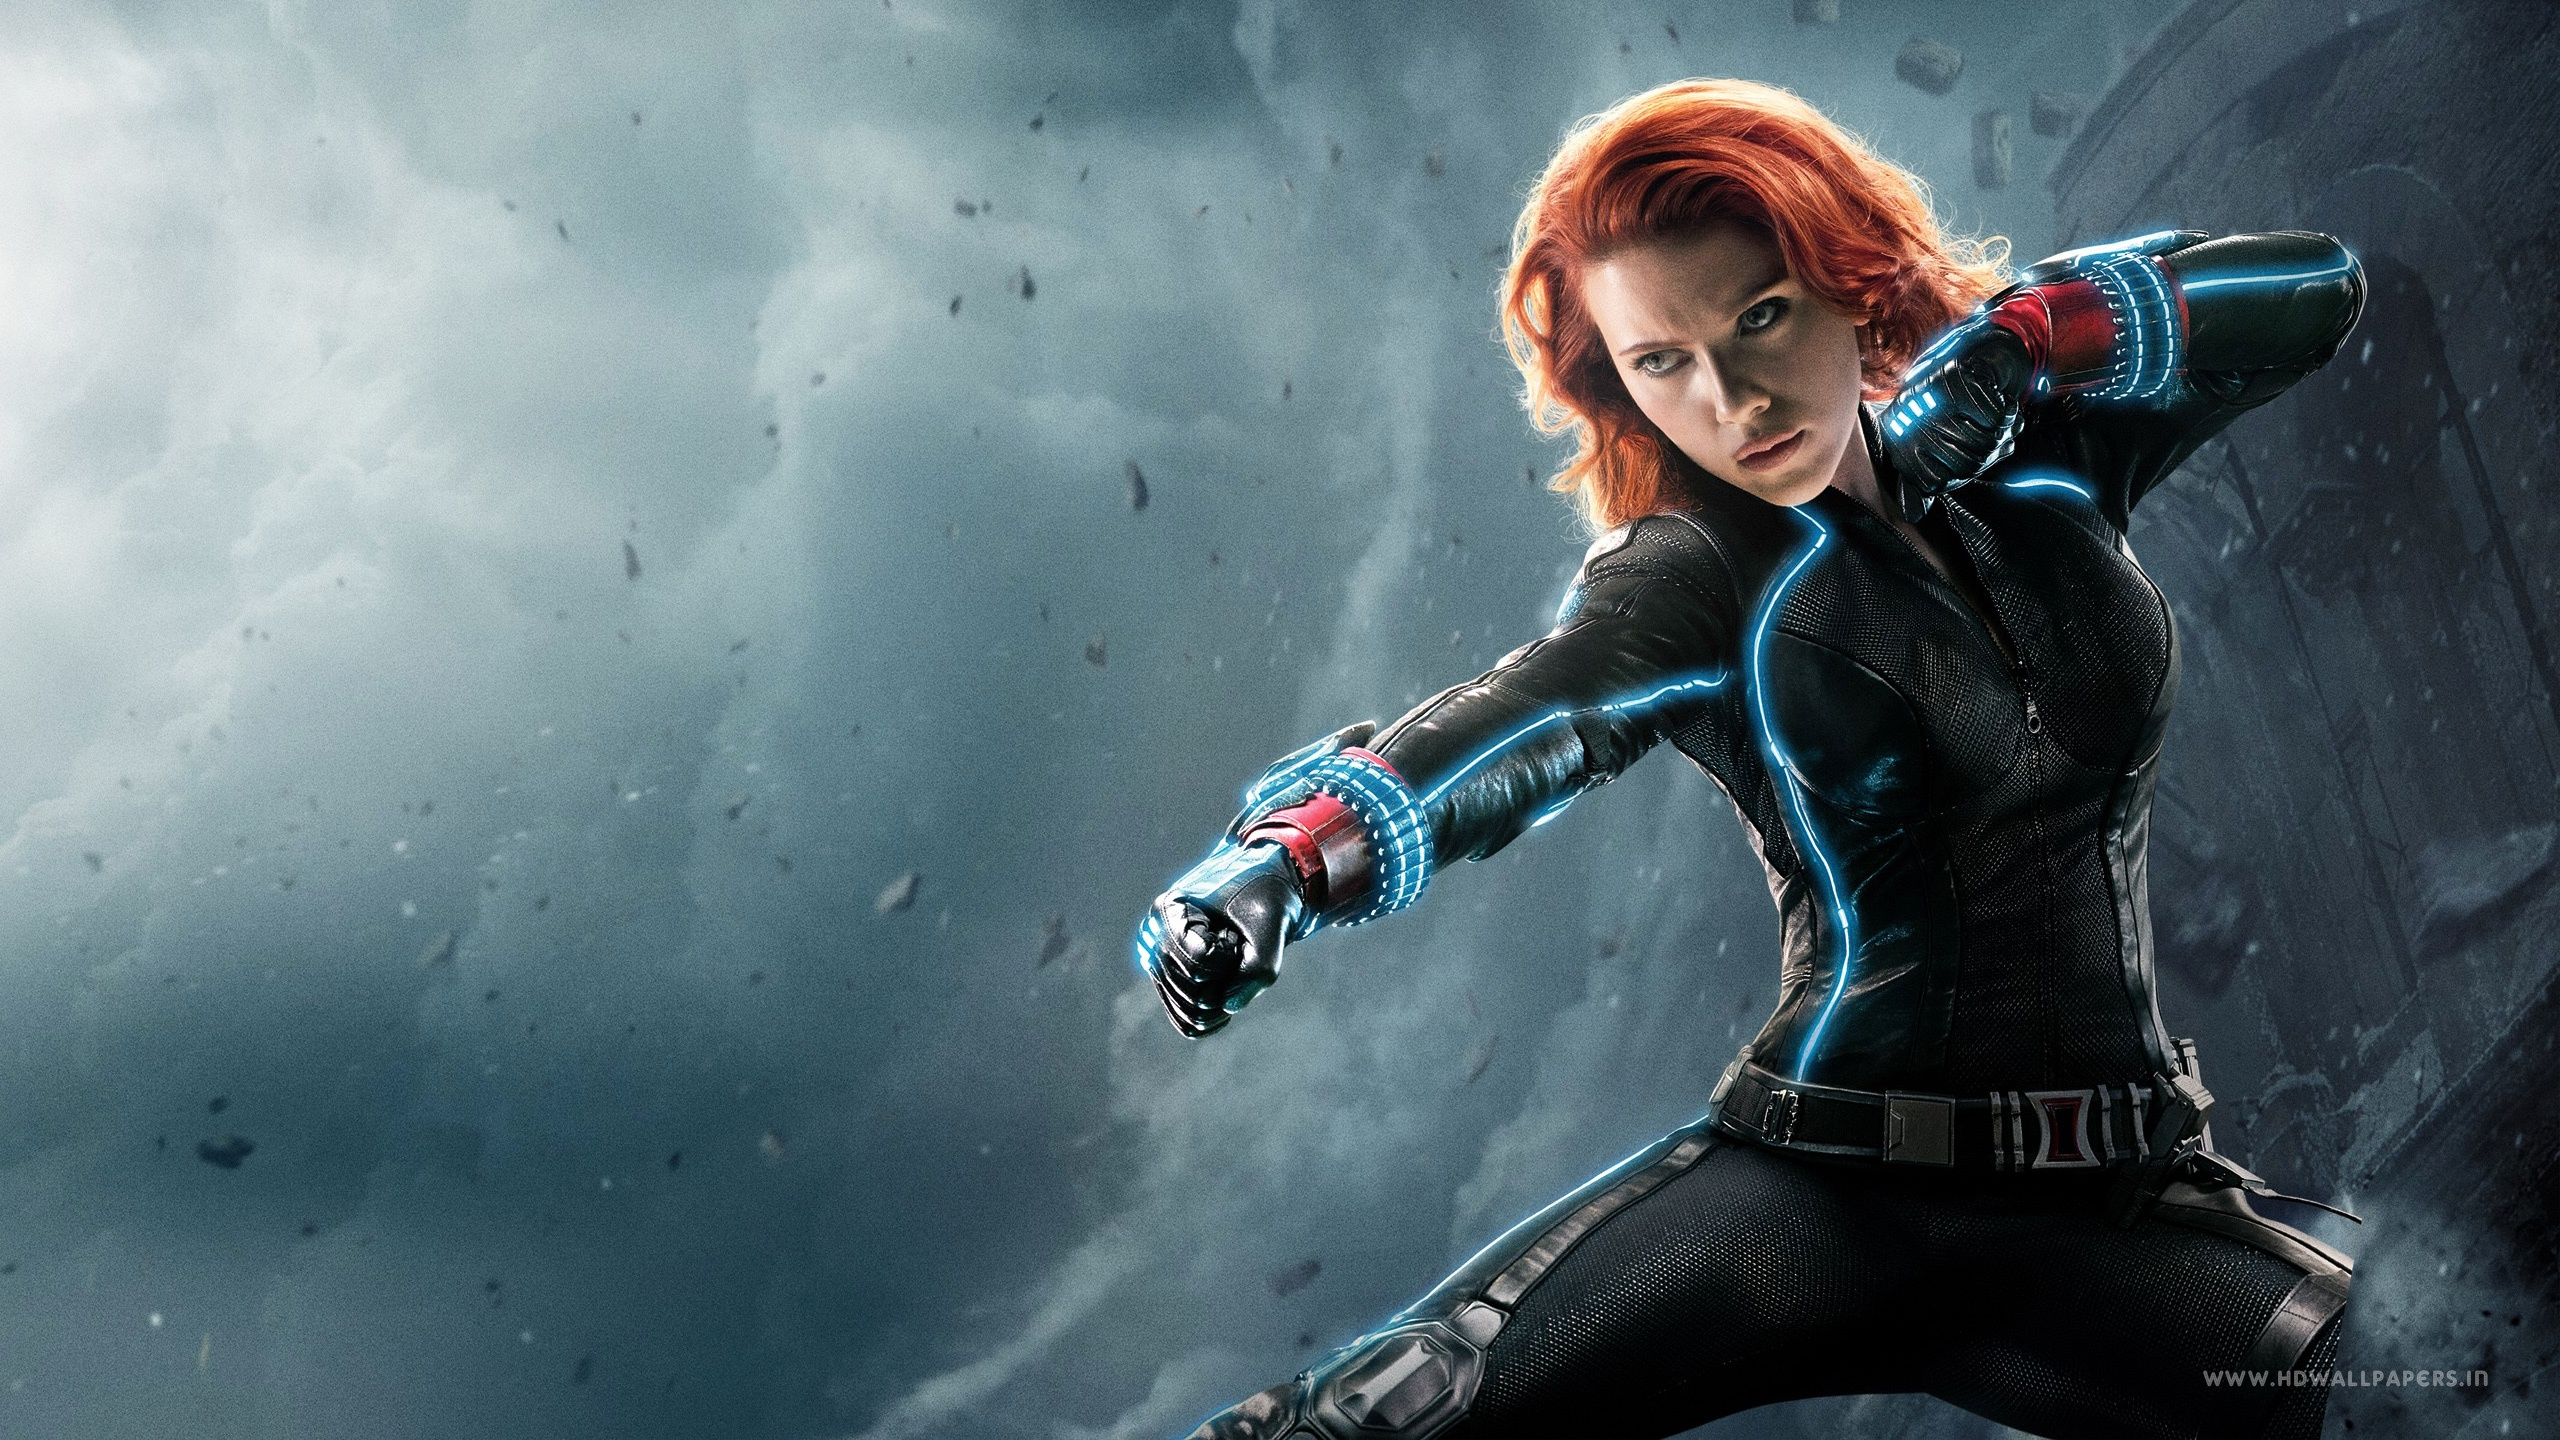 Avengers Age of Ultron Black Widow Wallpapers HD Wallpapers 2560x1440